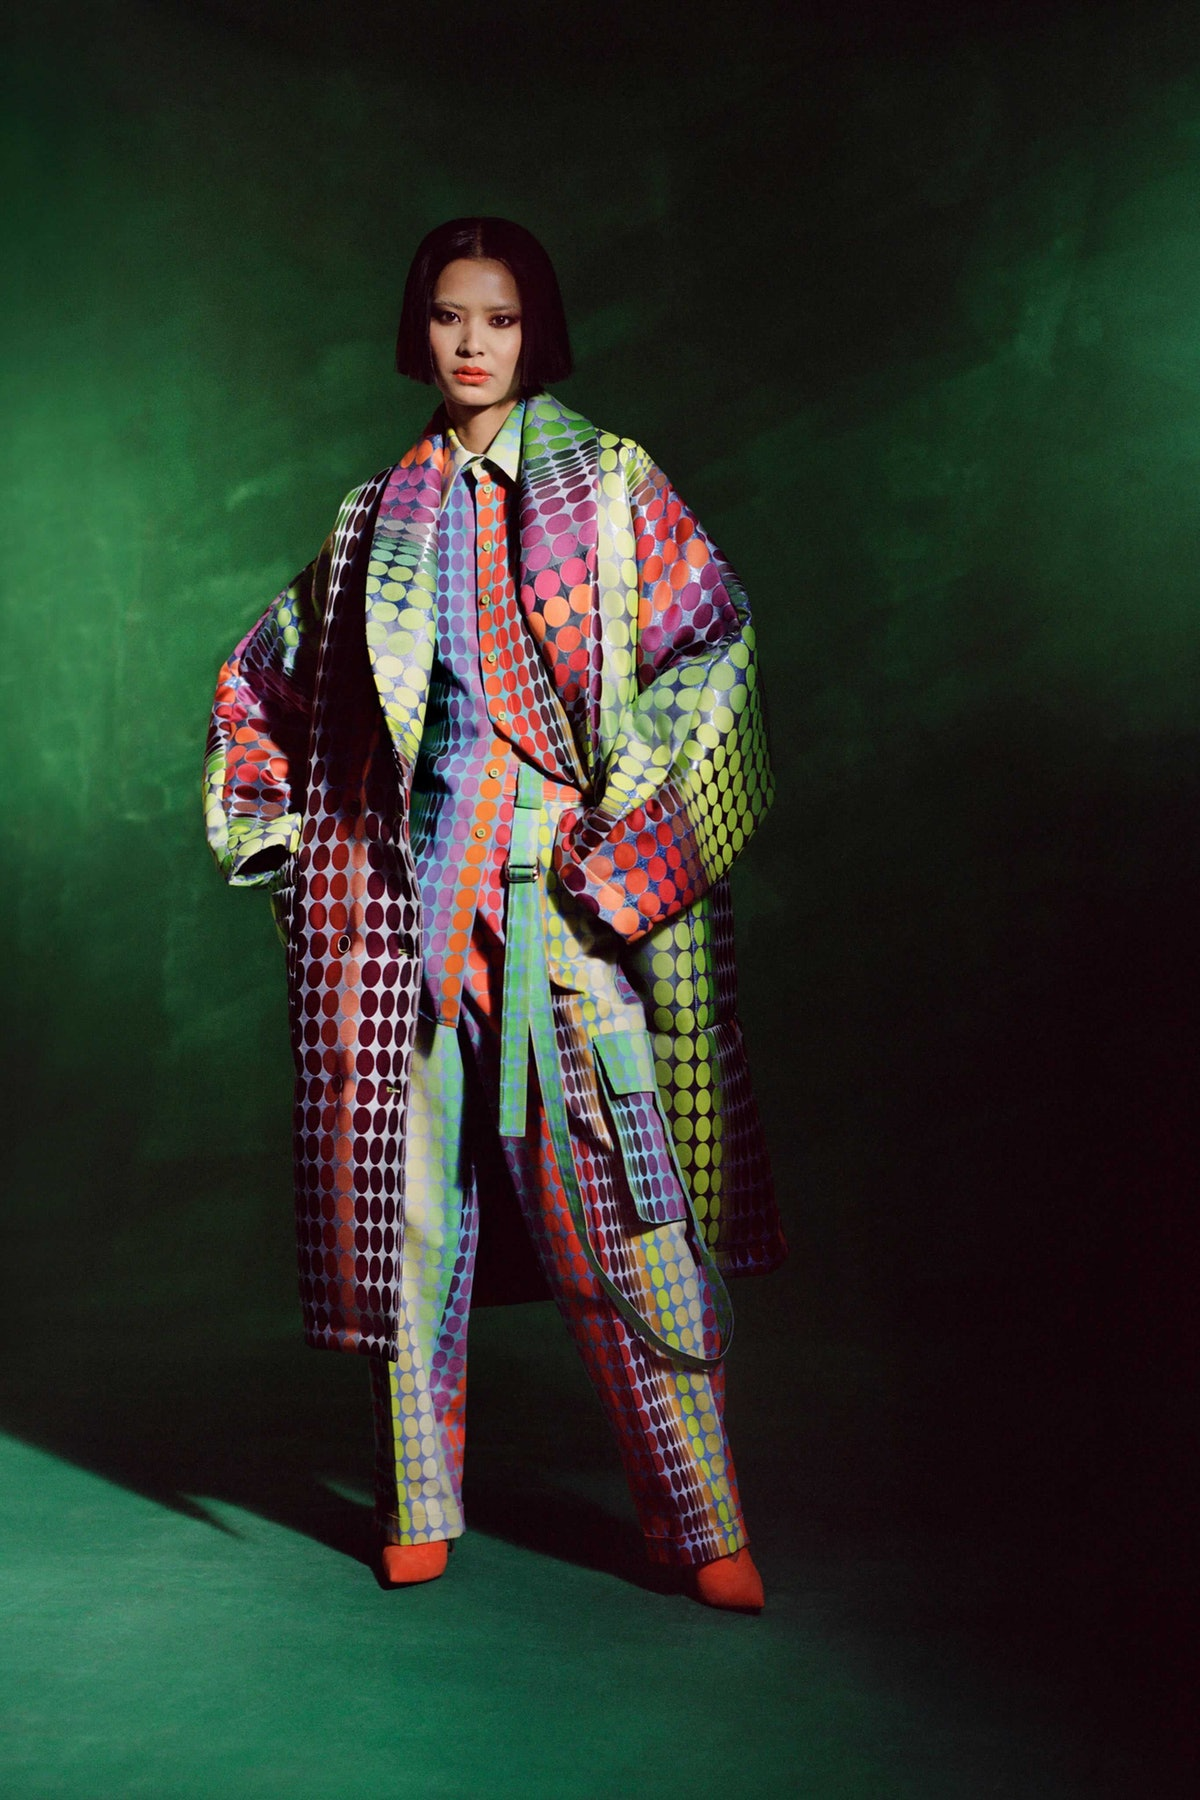 Model in colorful coat and matching set